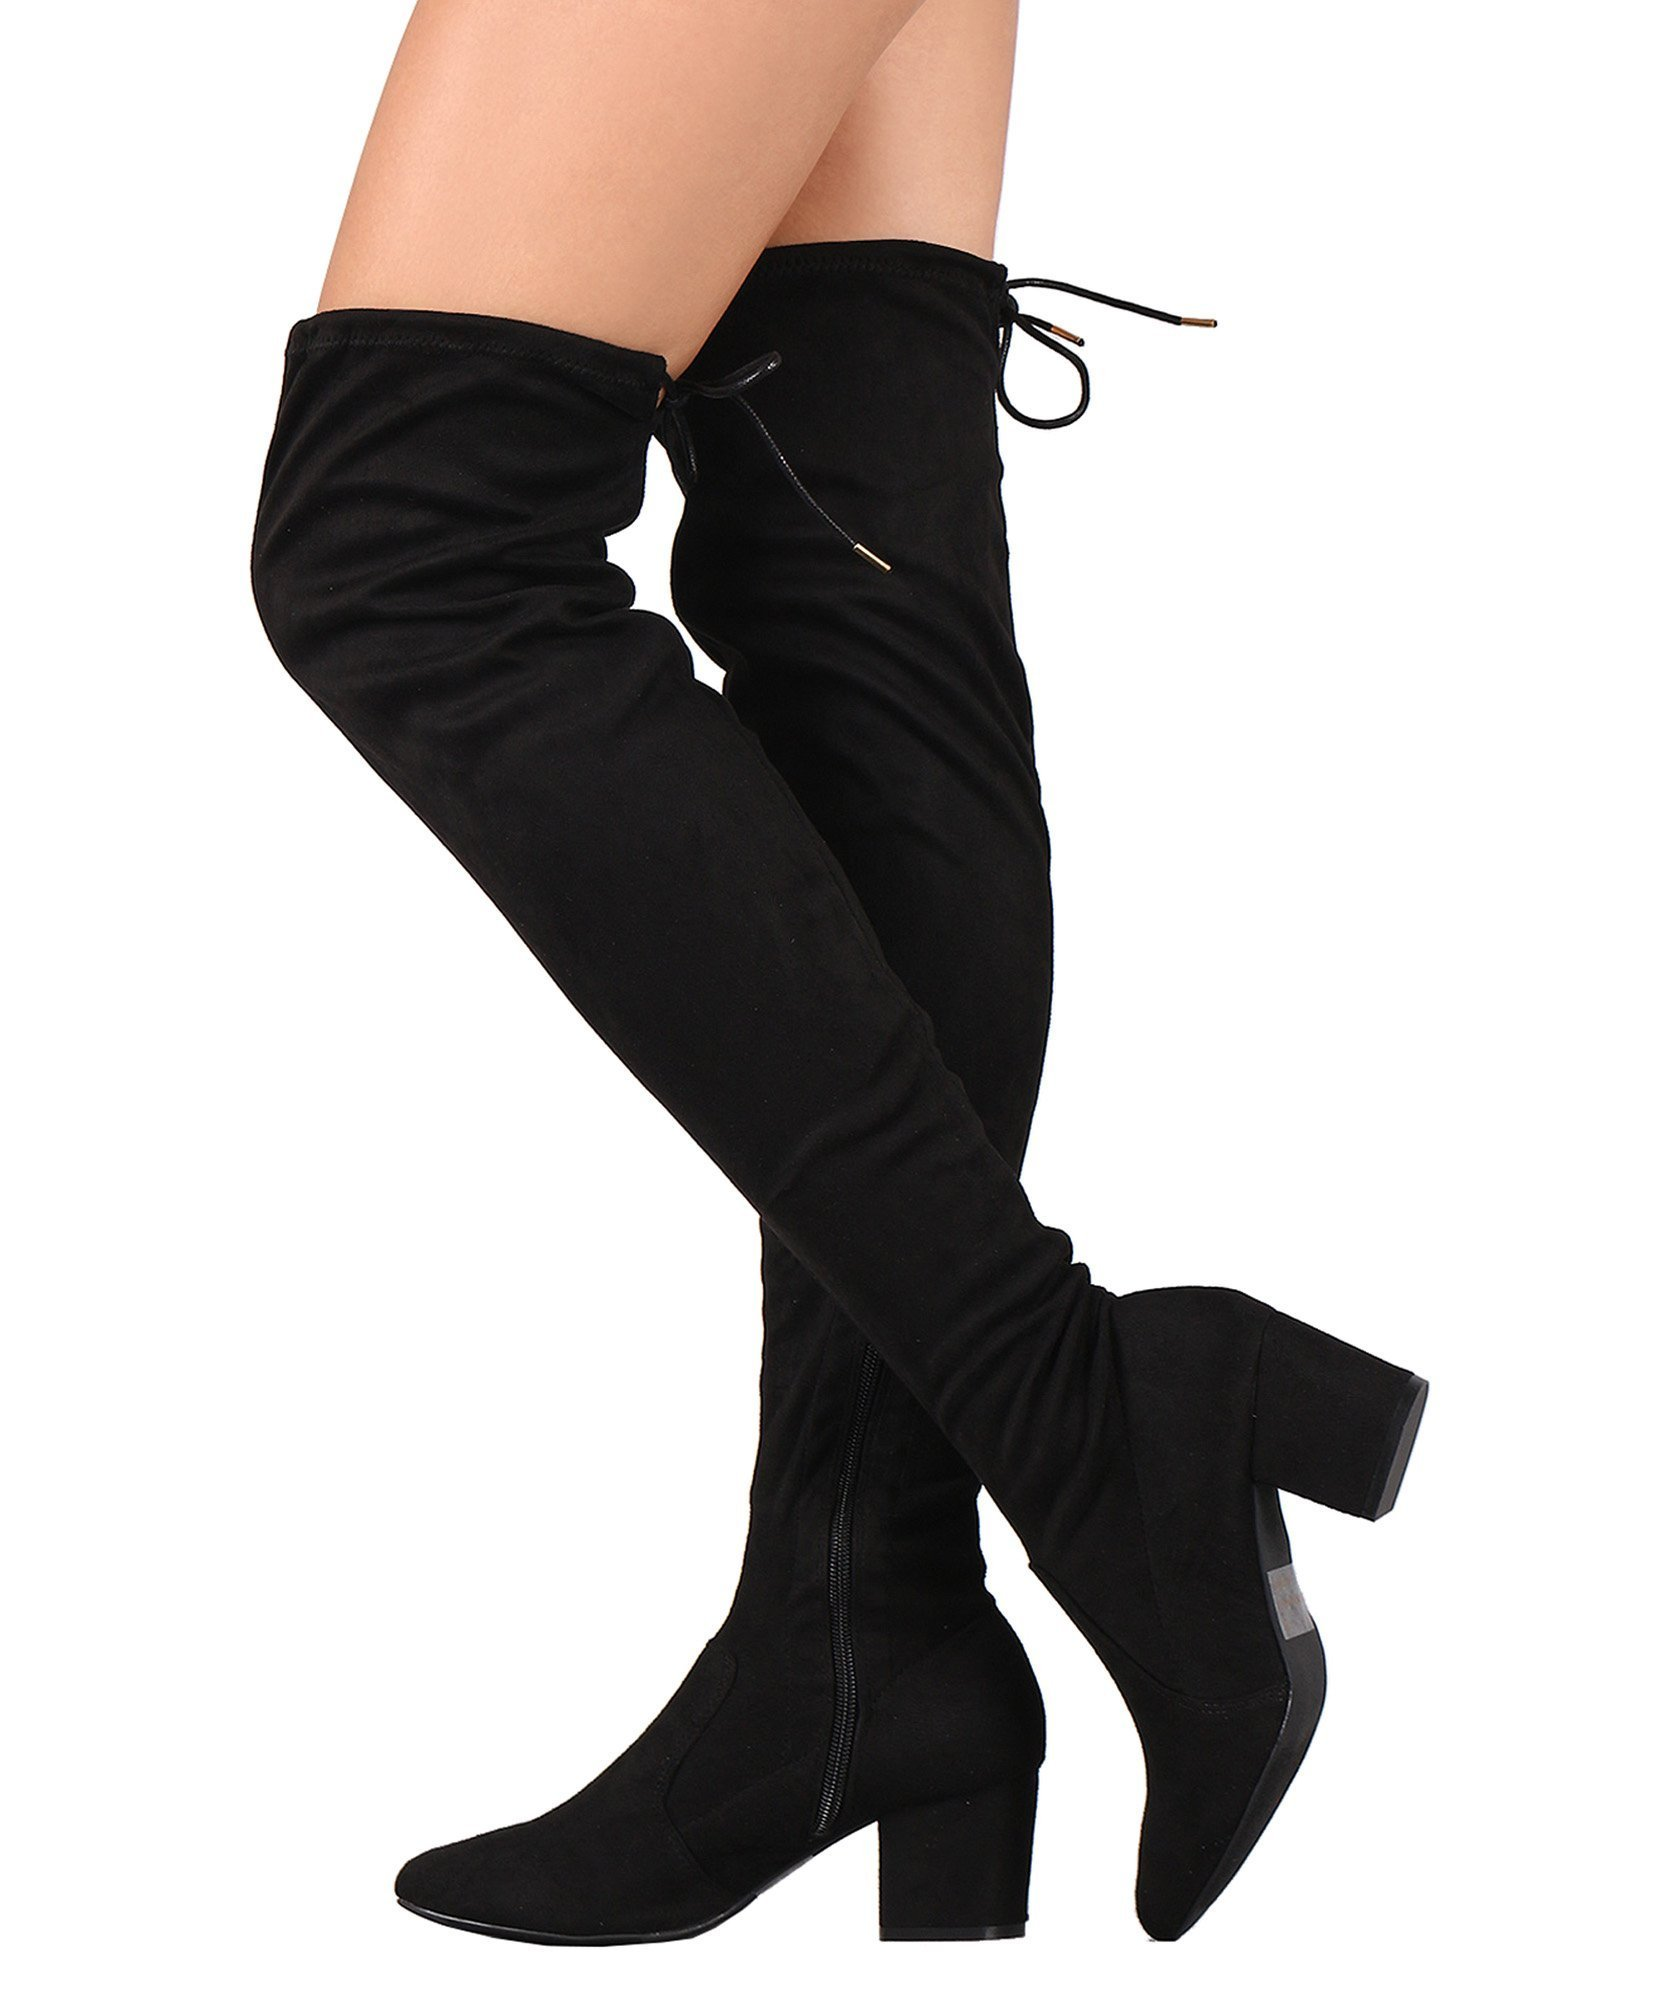 RF ROOM OF FASHION Women's Suede Drawstring Tie Block Heel Over The Knee Boots Black (8)